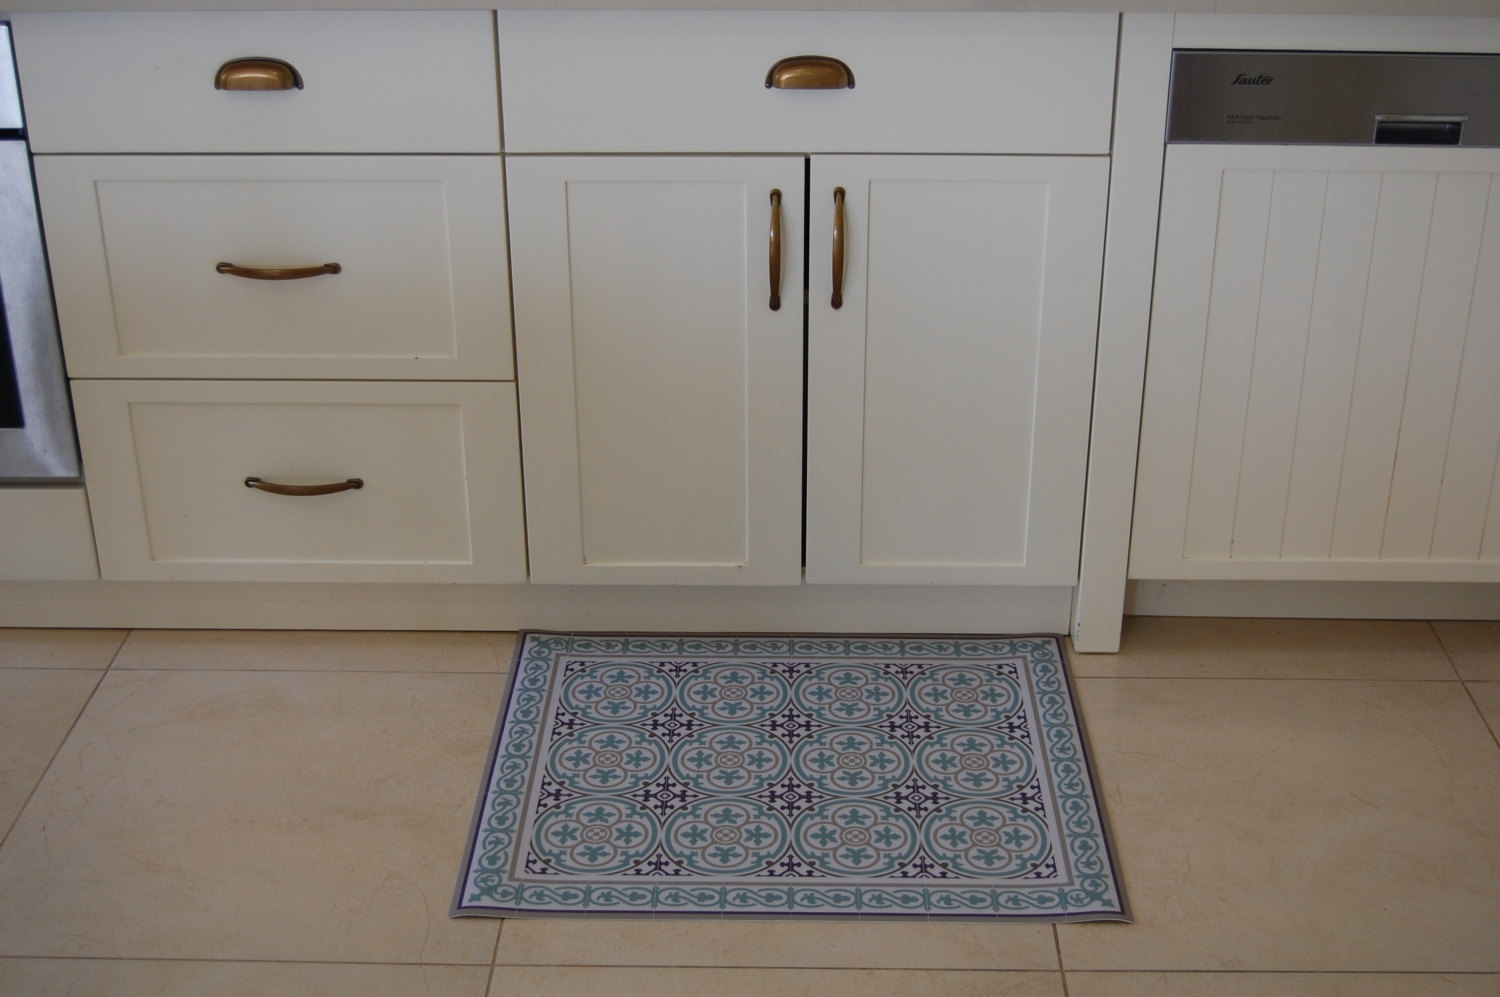 Pvc vinyl mat tiles pattern decorative linoleum rug for Kitchen linoleum tiles